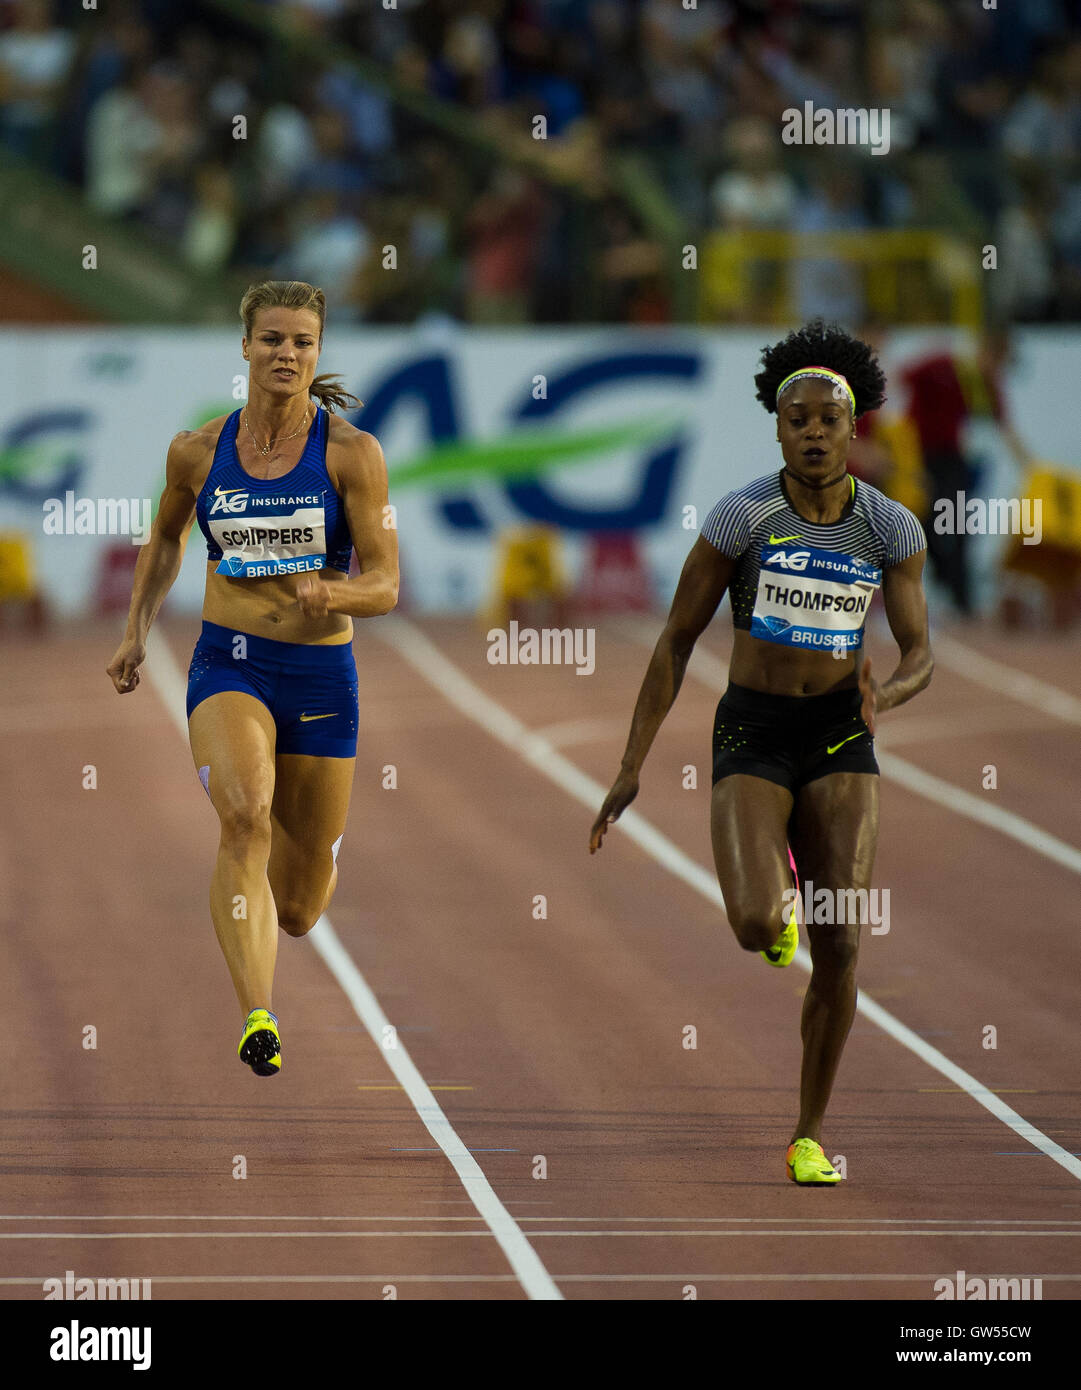 BRUSSELS, BELGIUM - SEPTEMBER 9: Dafne Schippers and  Elaine Thompson competing in the women's 100m at the AG - Stock Image